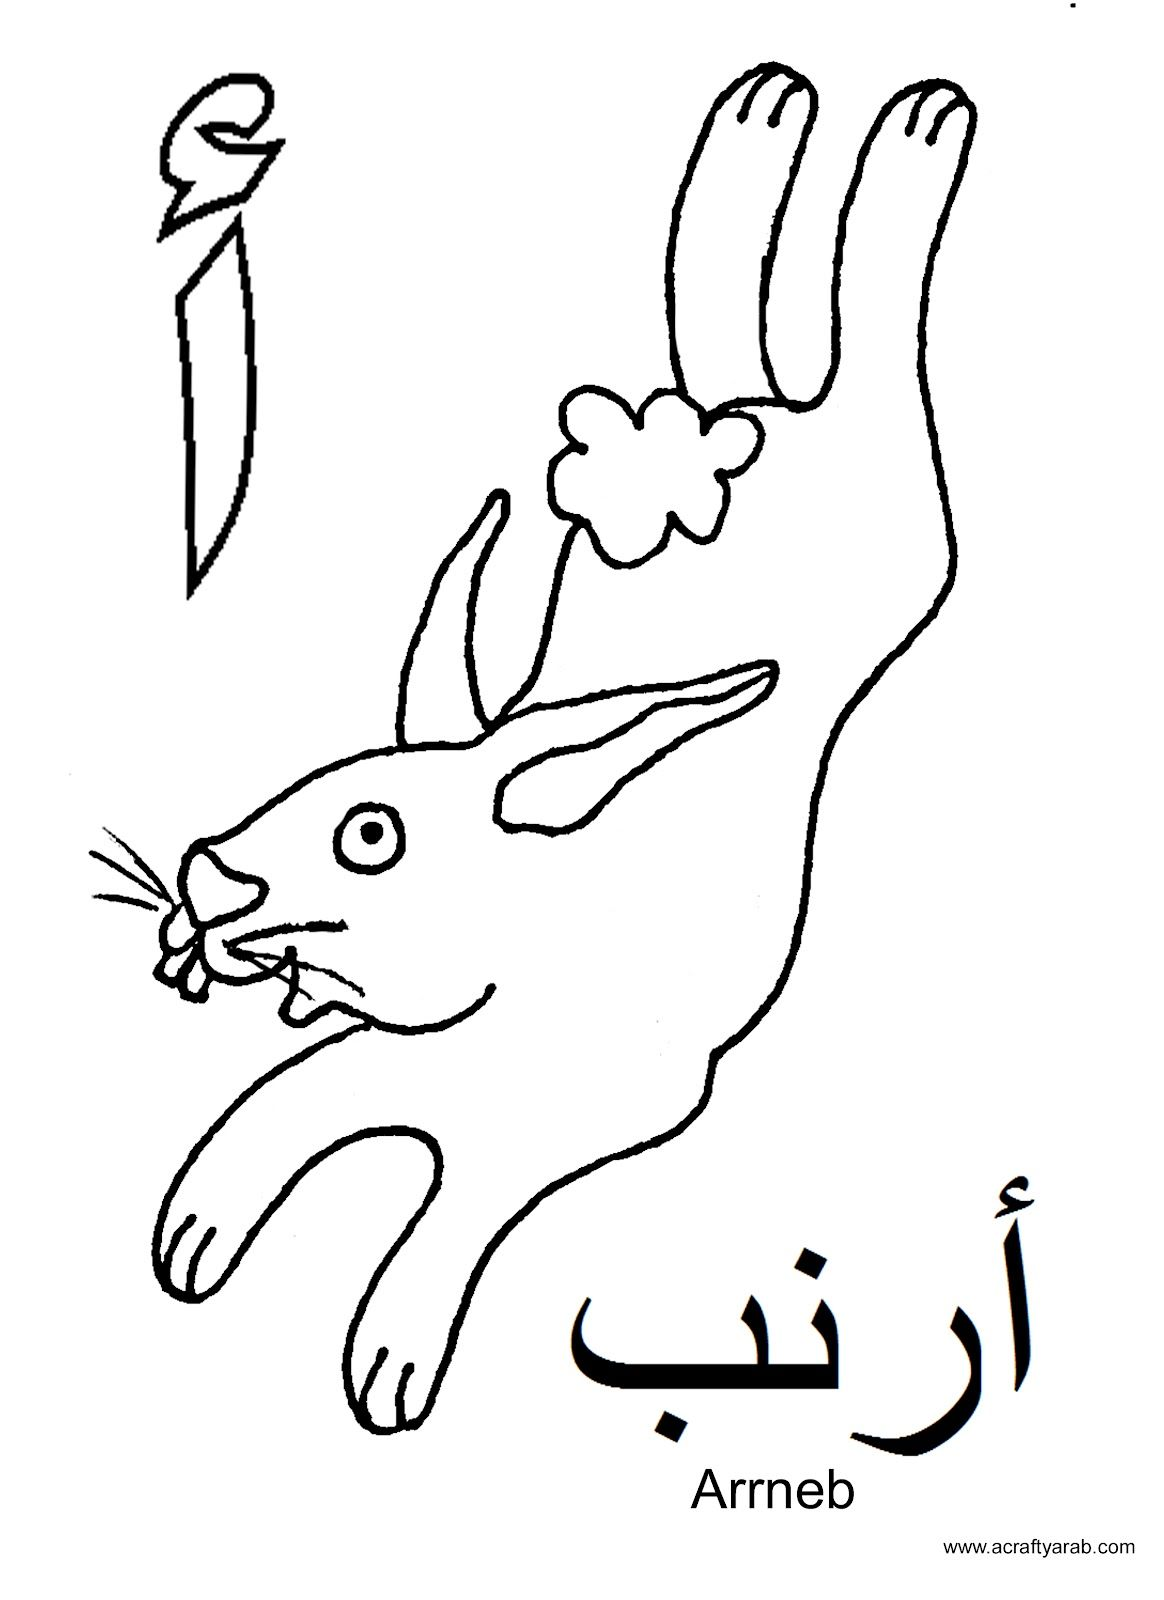 Arabic alphabet for kids with cute animals and fruit for each letter - Printable Pages Of The Arabic Alphabet To Color